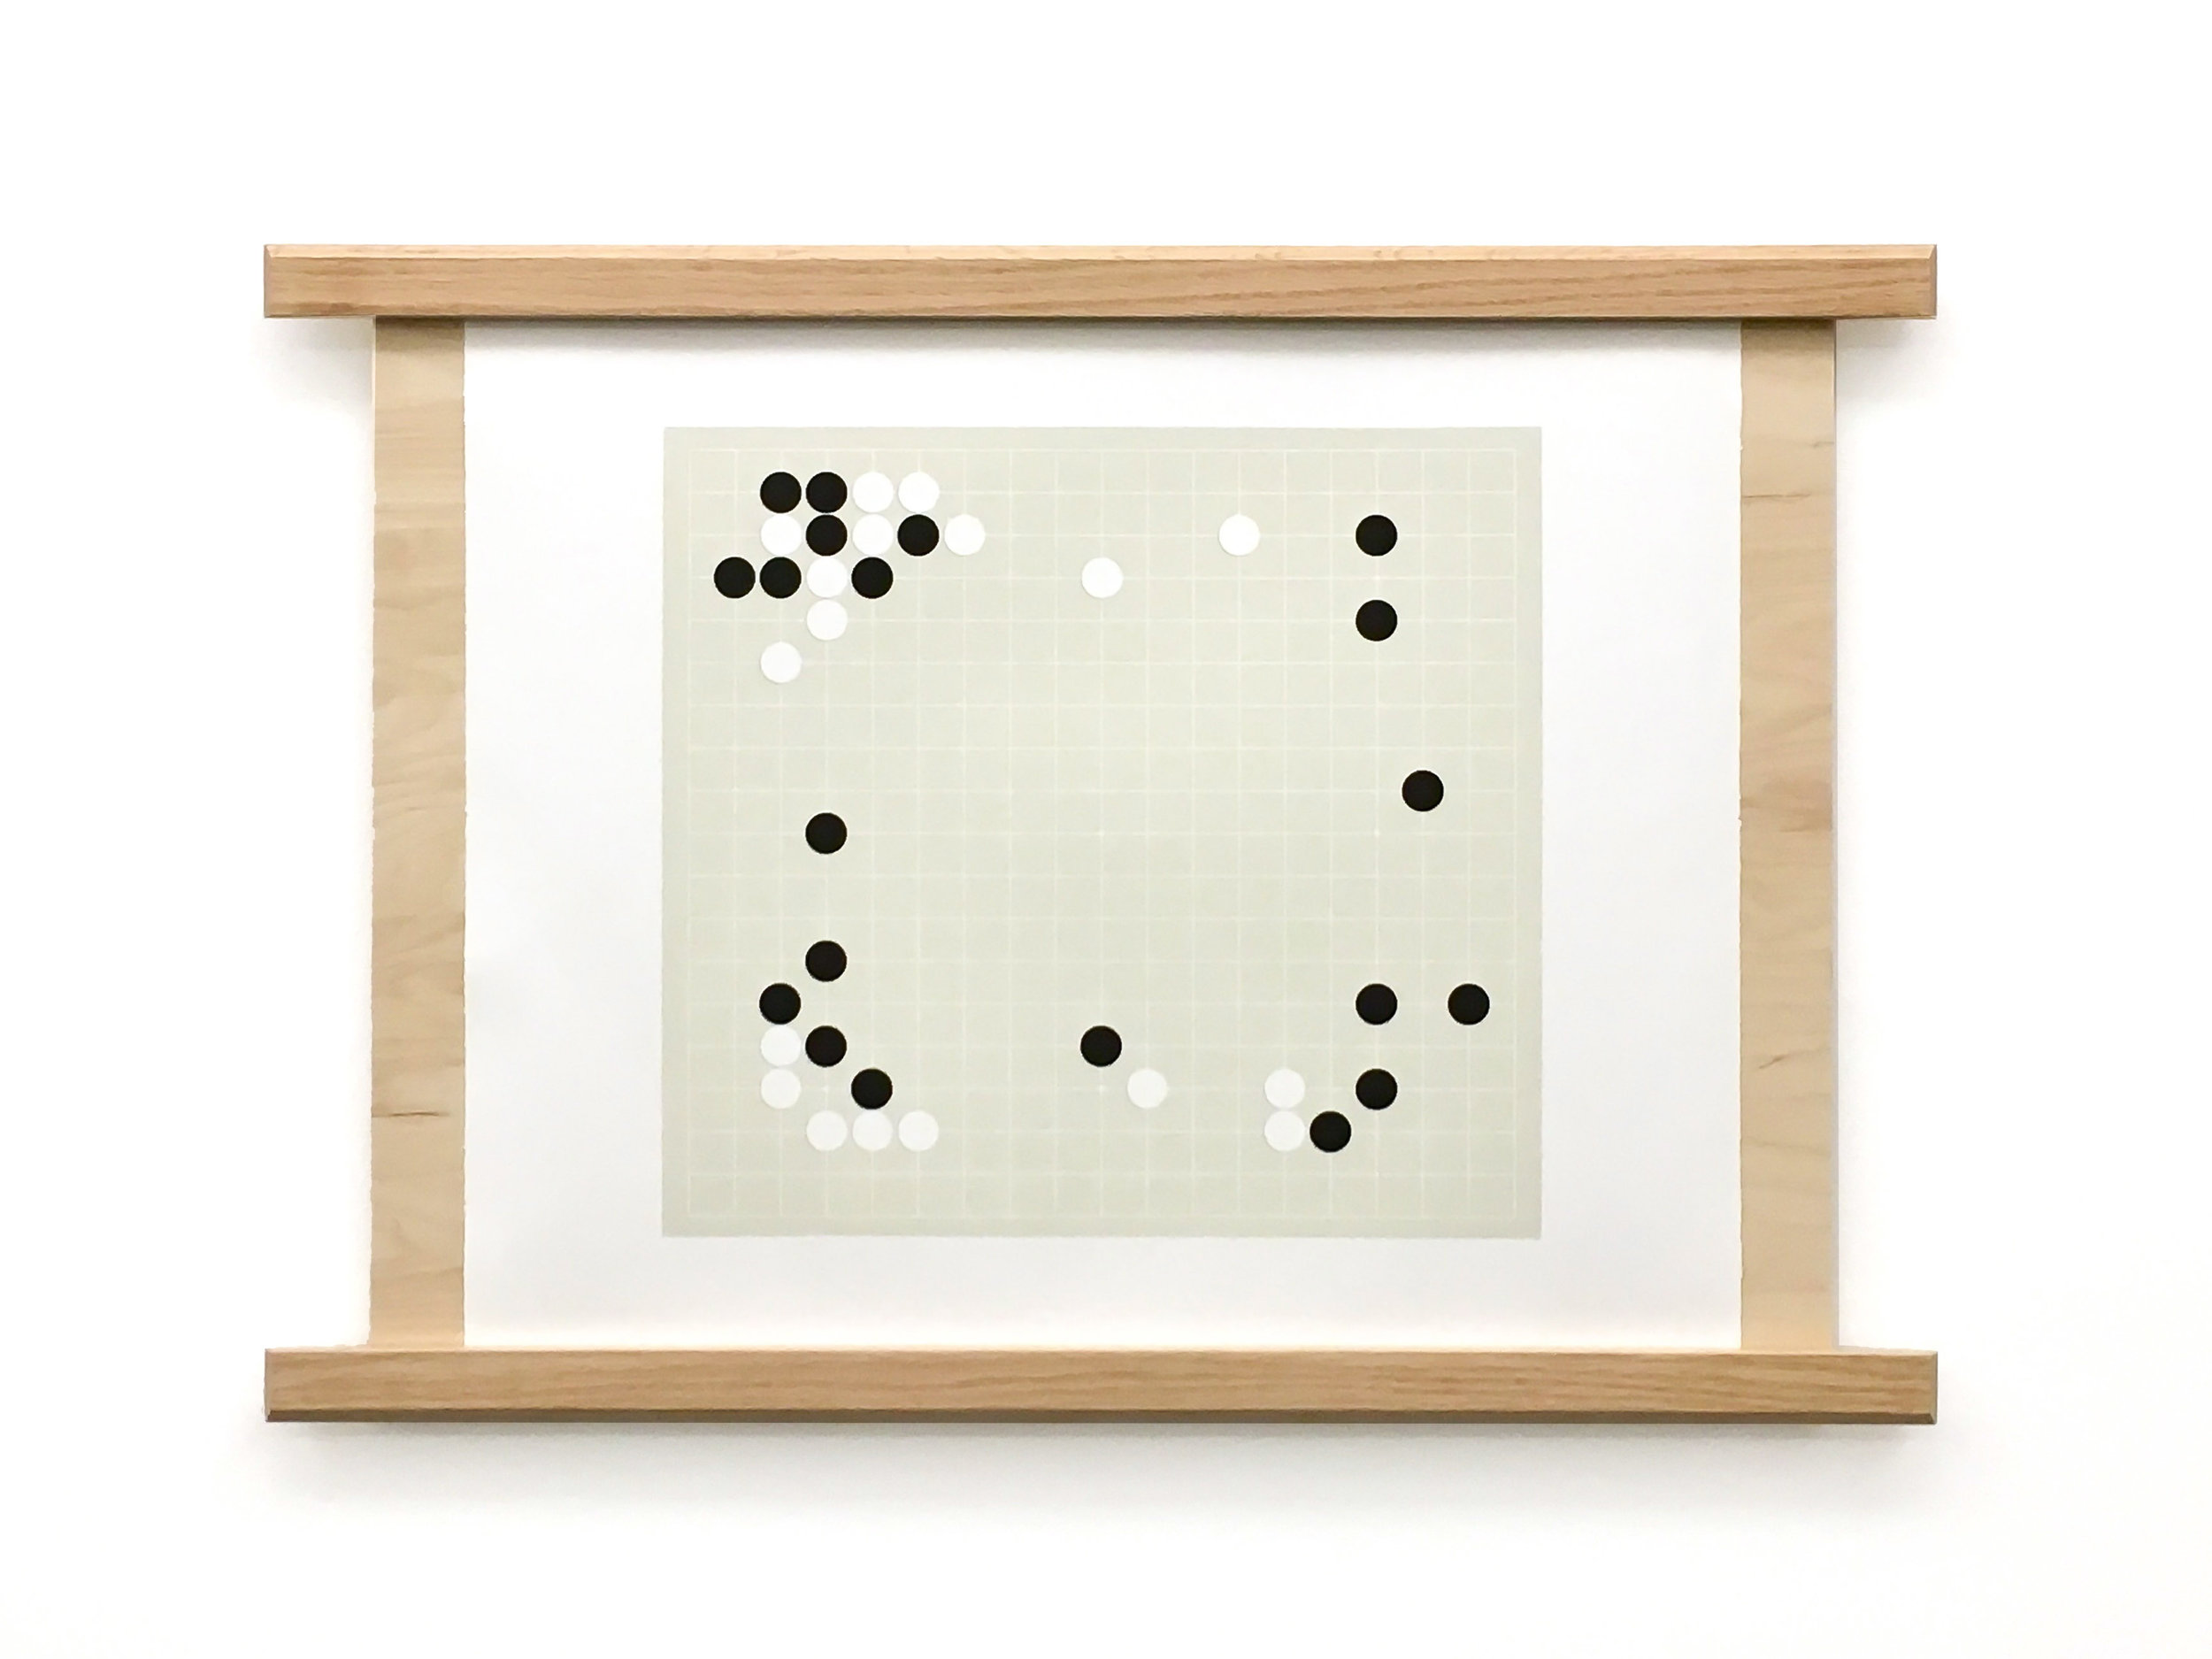 "Learning From One's Mistakes (Game 2, Move 37) Lithograph with Wood Support 22"" x 23"""